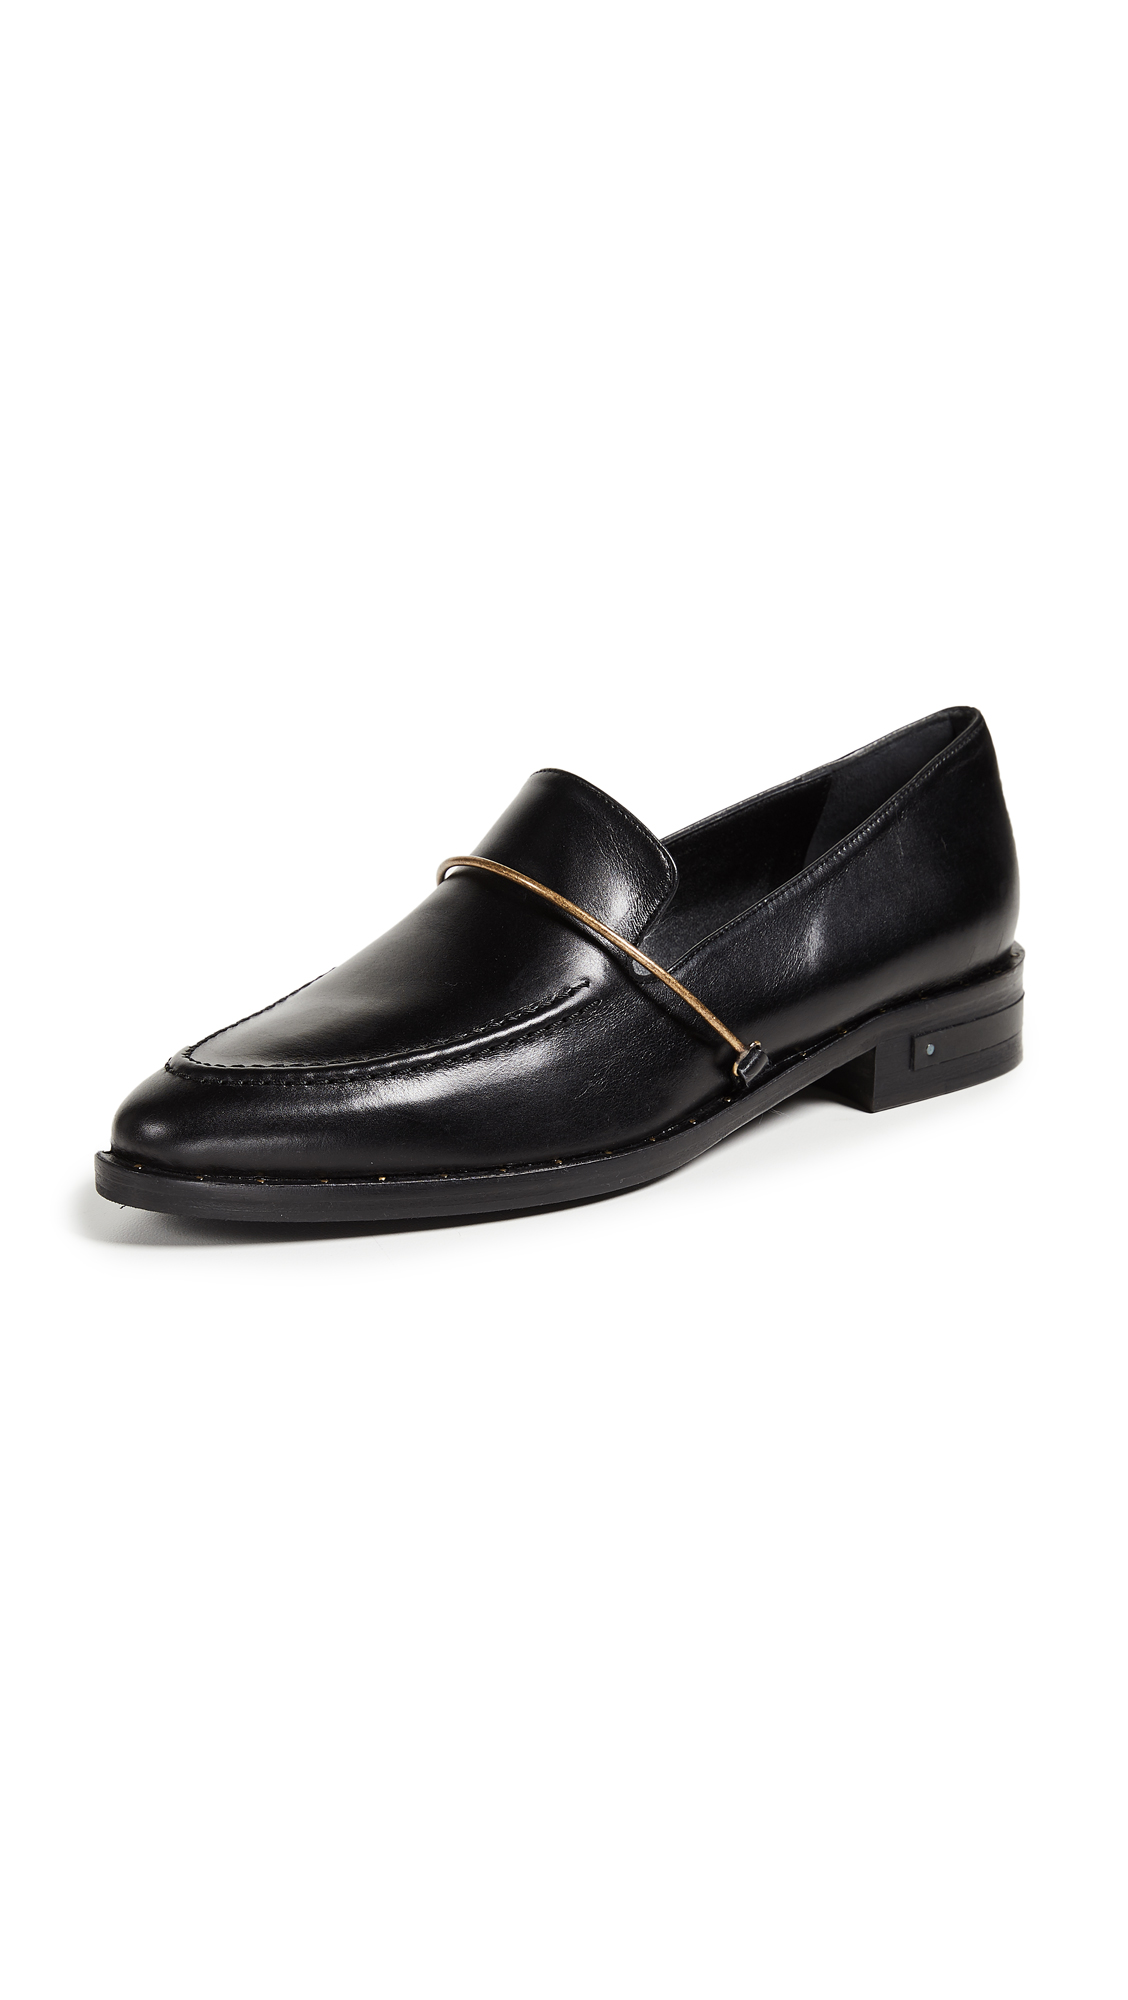 Freda Salvador The Light Loafers - Black